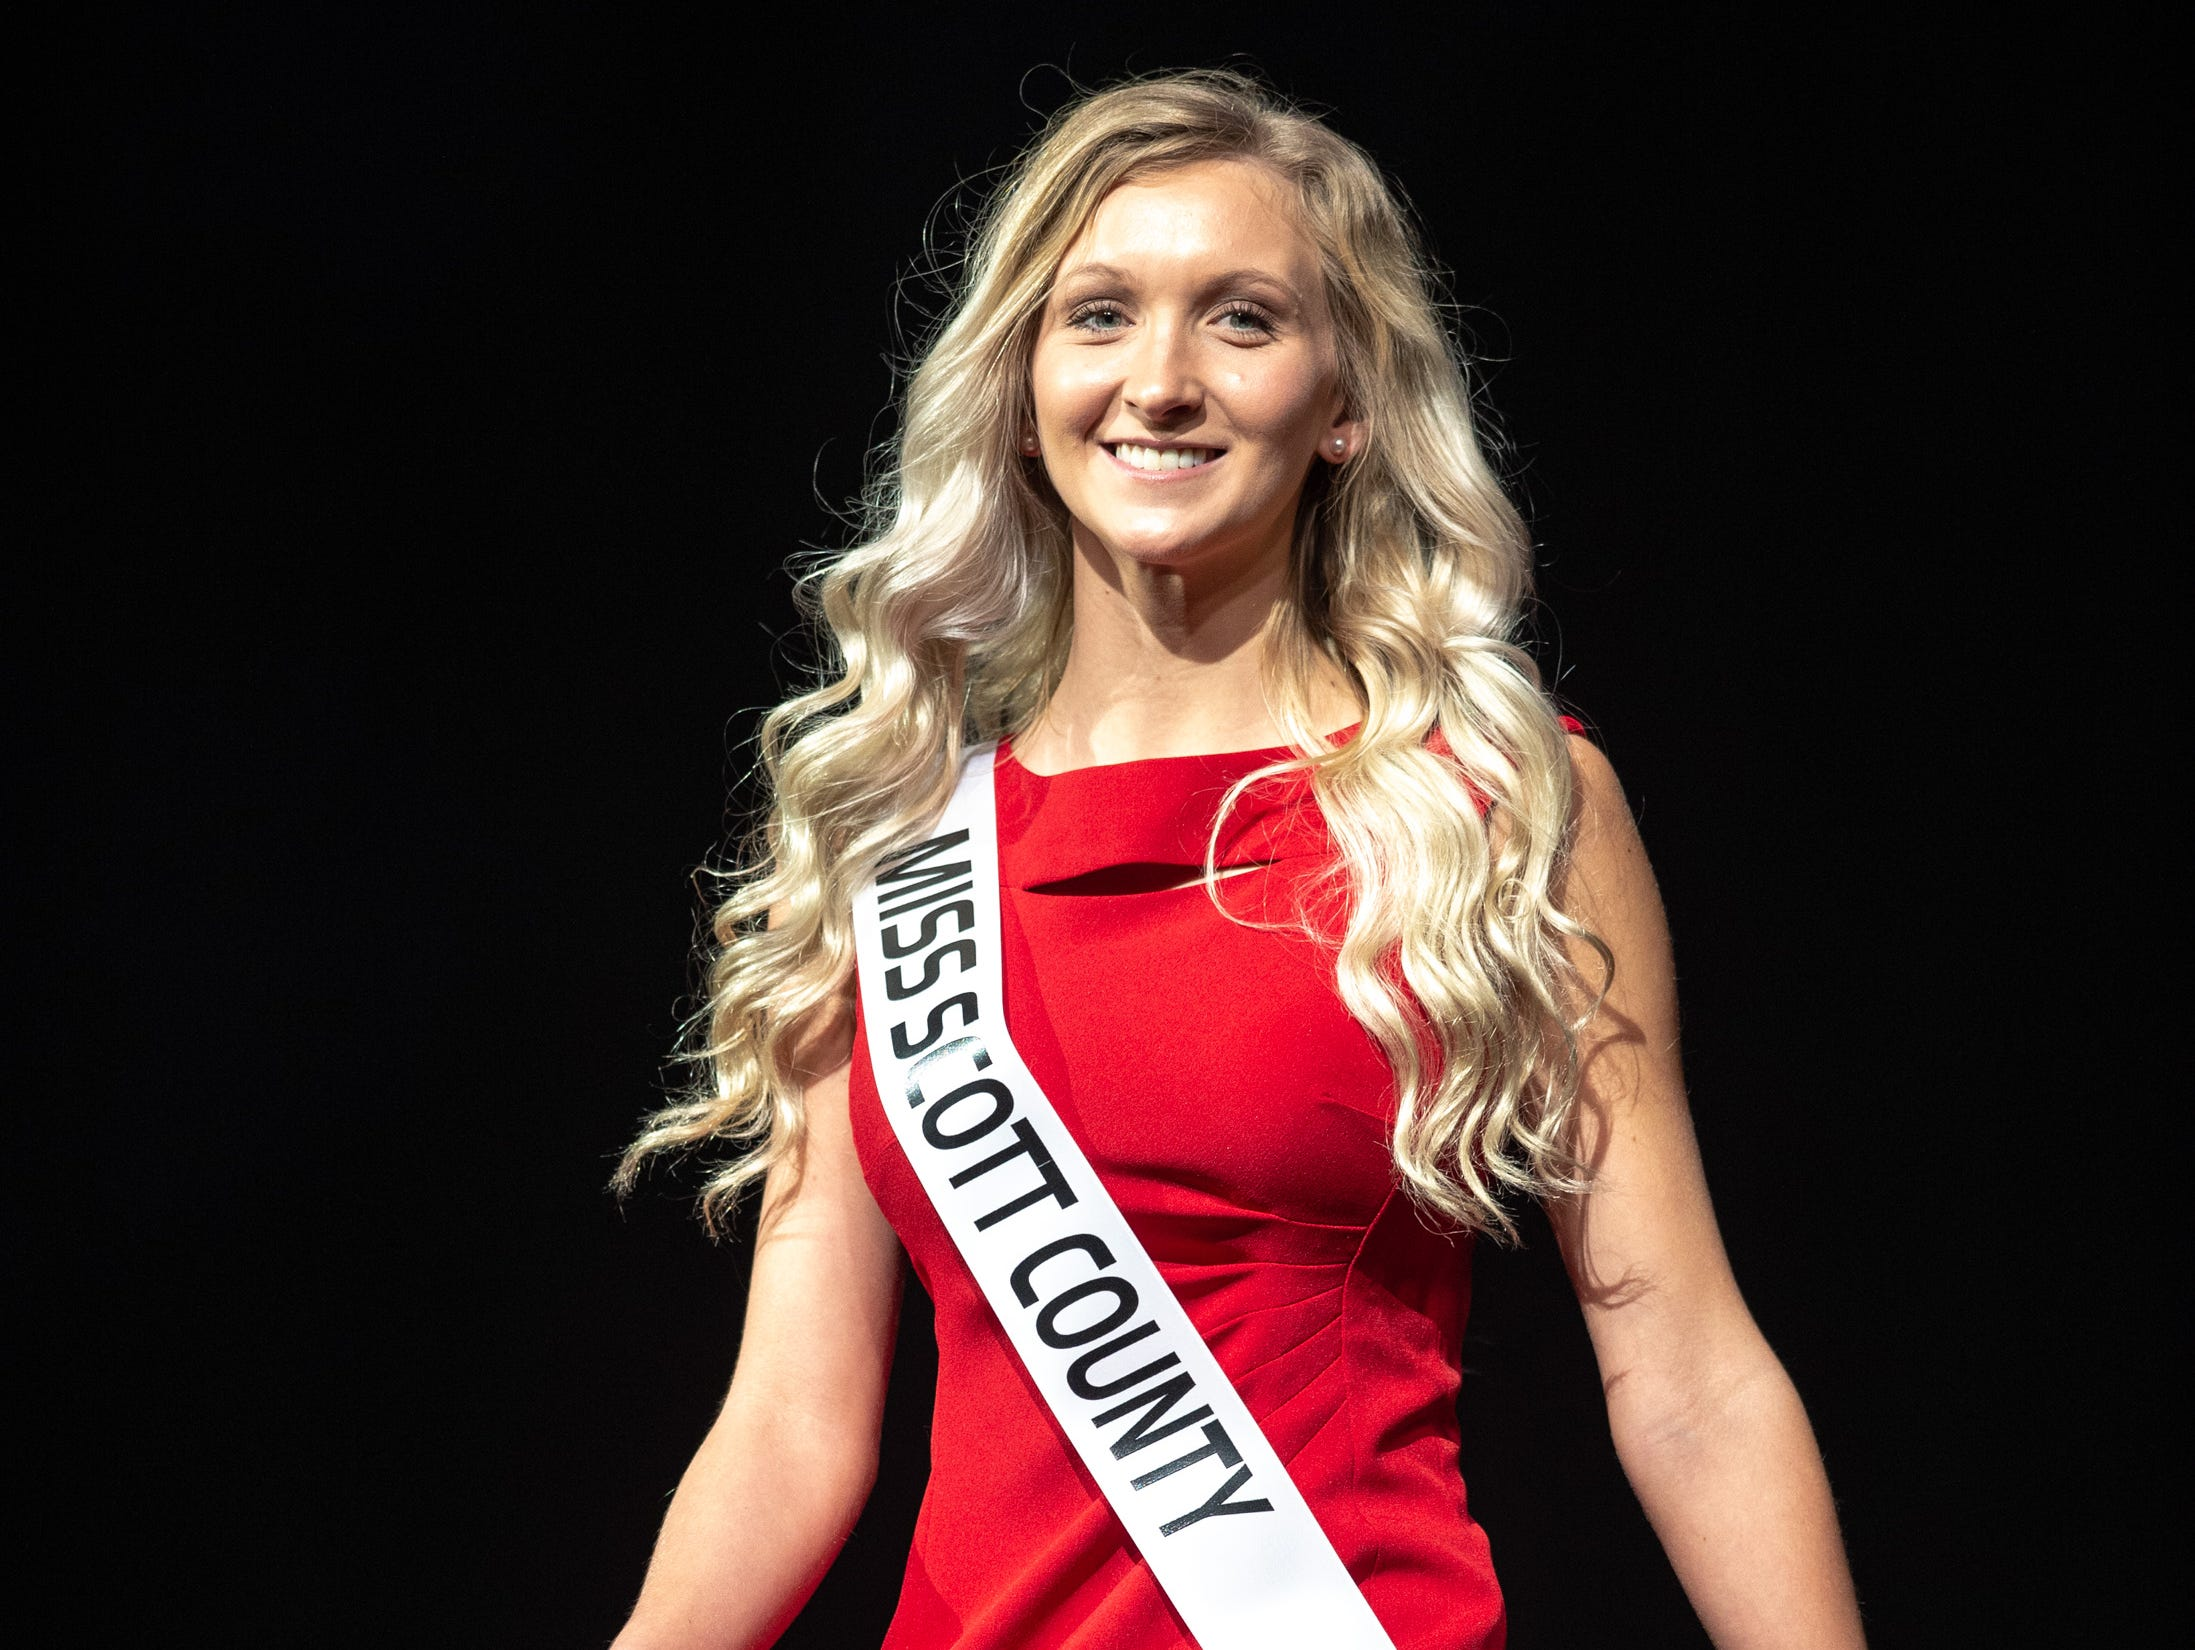 Miss Scott County, Jesse Mays, during the 61st Indiana State Fair Queen Pageant at the Indiana State Fairgrounds in Indianapolis on Sunday, Jan. 6, 2019.